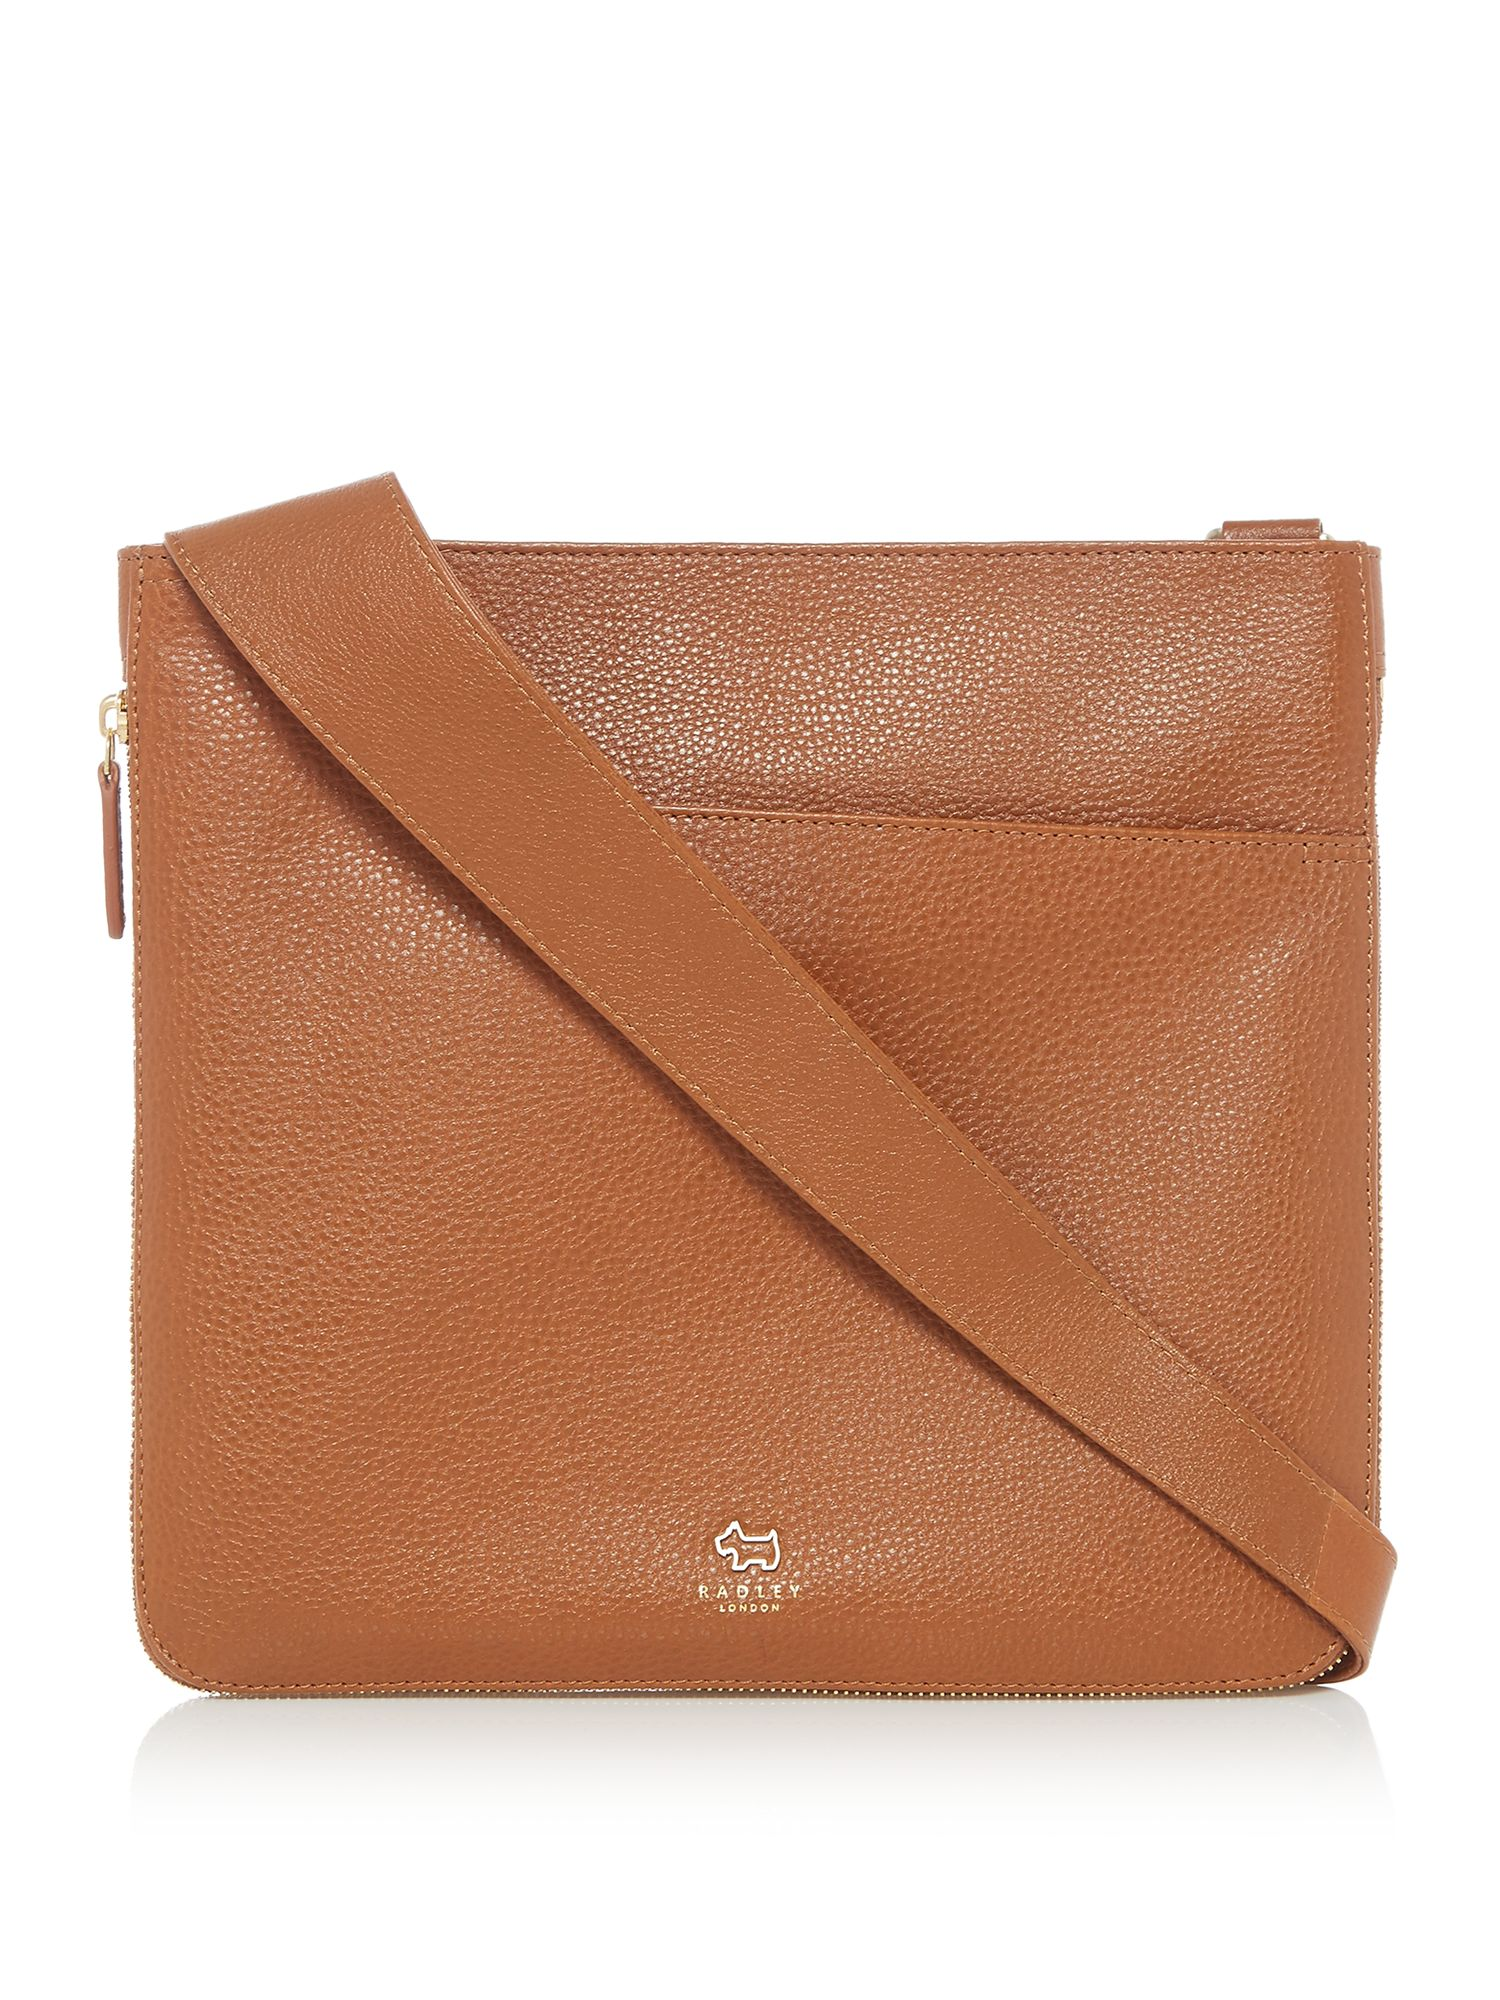 Radley Pocket bag large zip cross body bag Tan